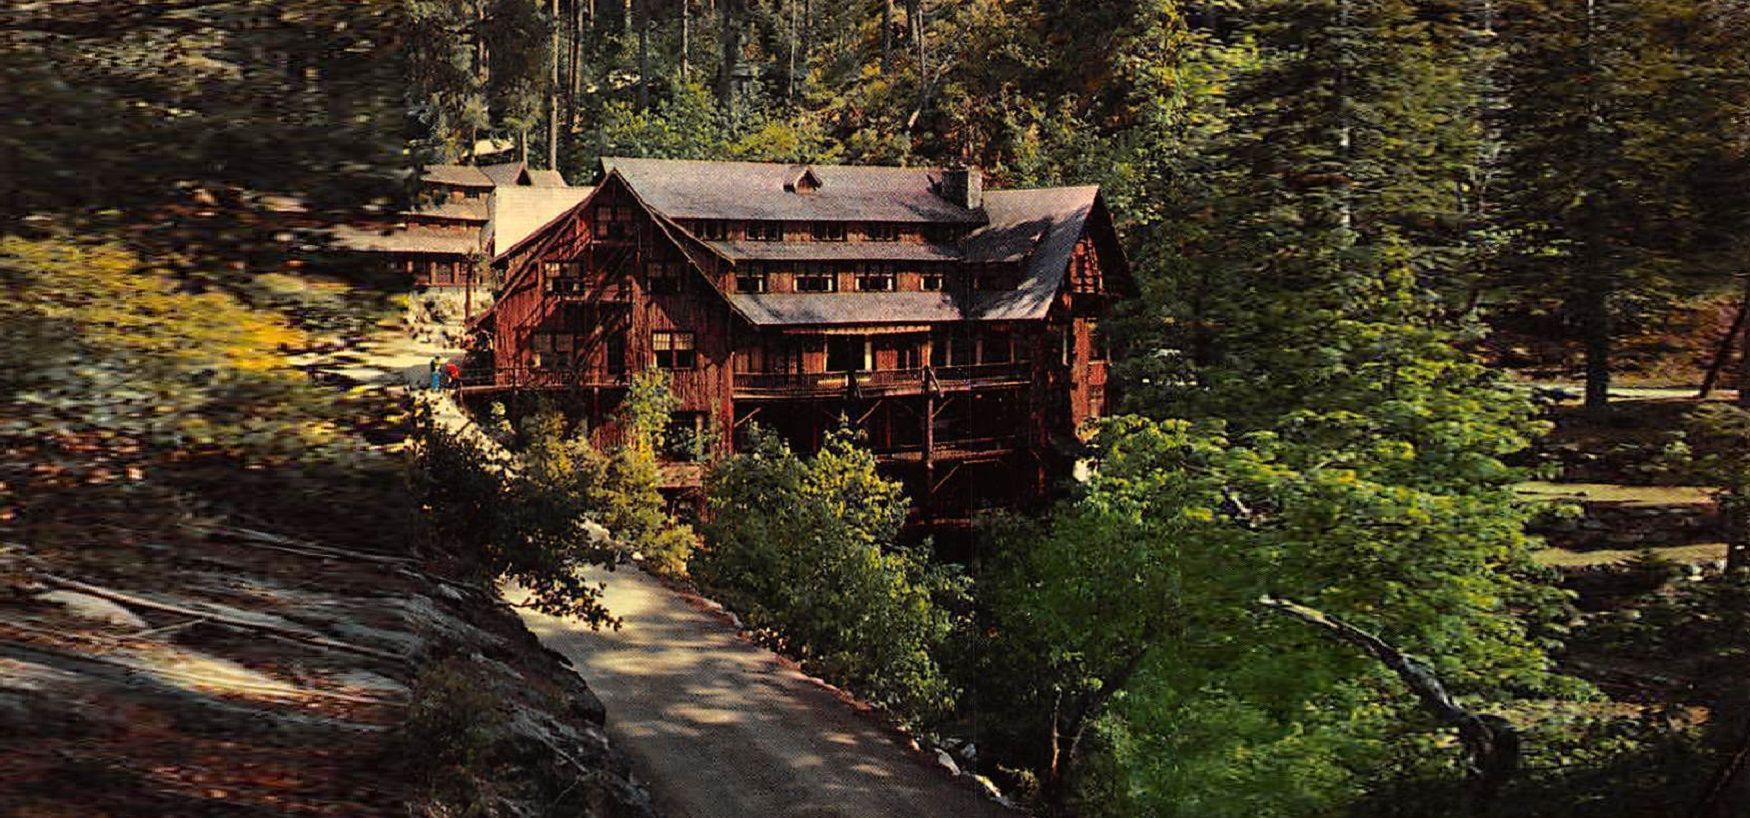 or-chateau-at-the-oregon-caves-00-haunted-journeys